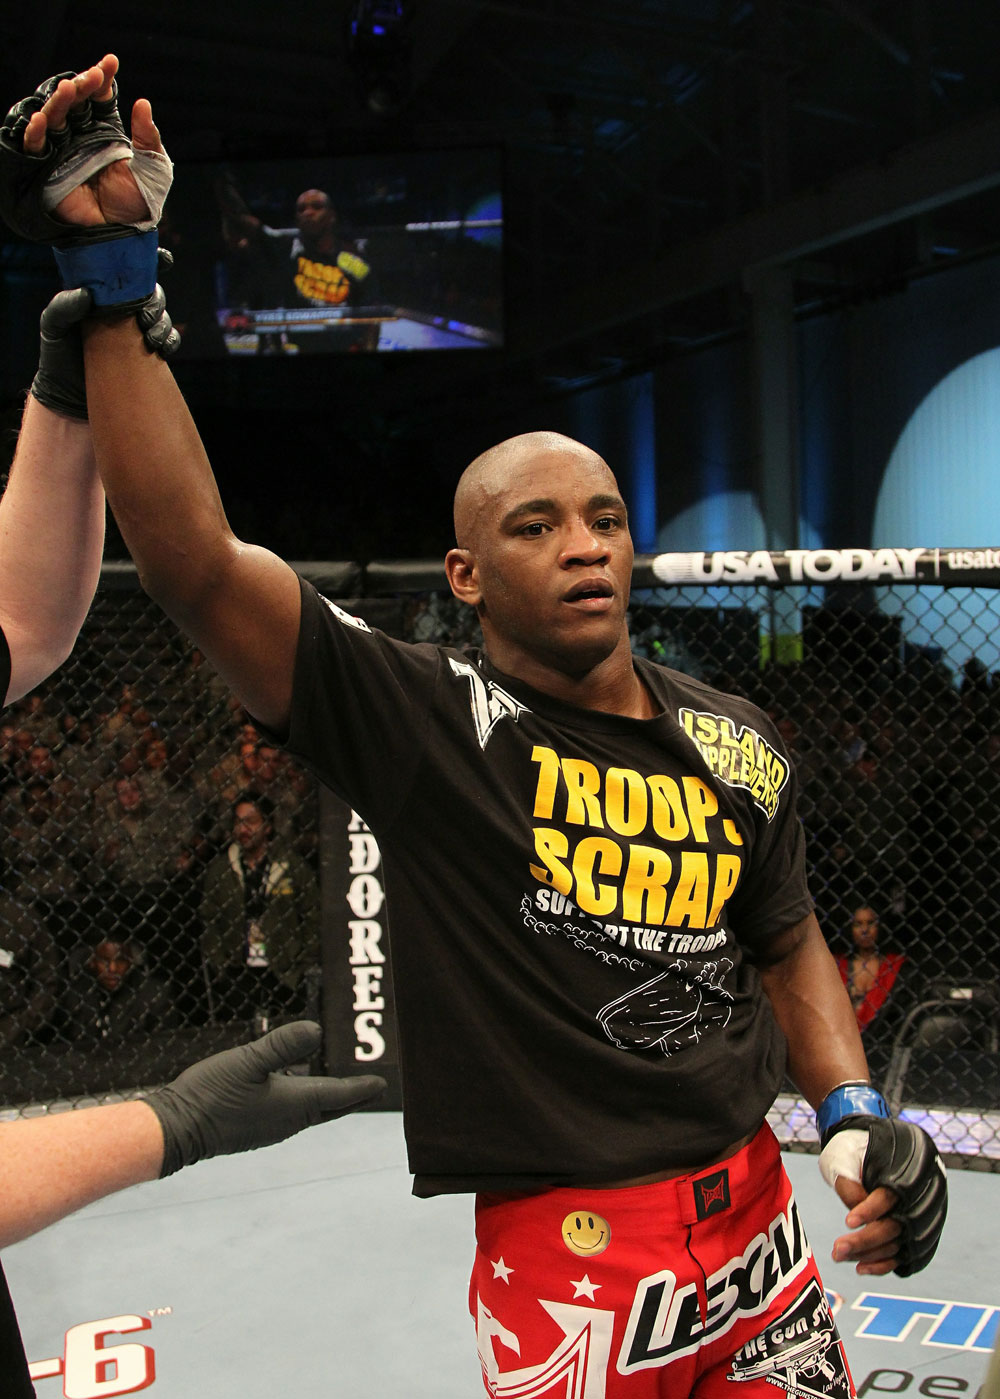 Yves Edwards celebrates his win over Cody McKenzie.